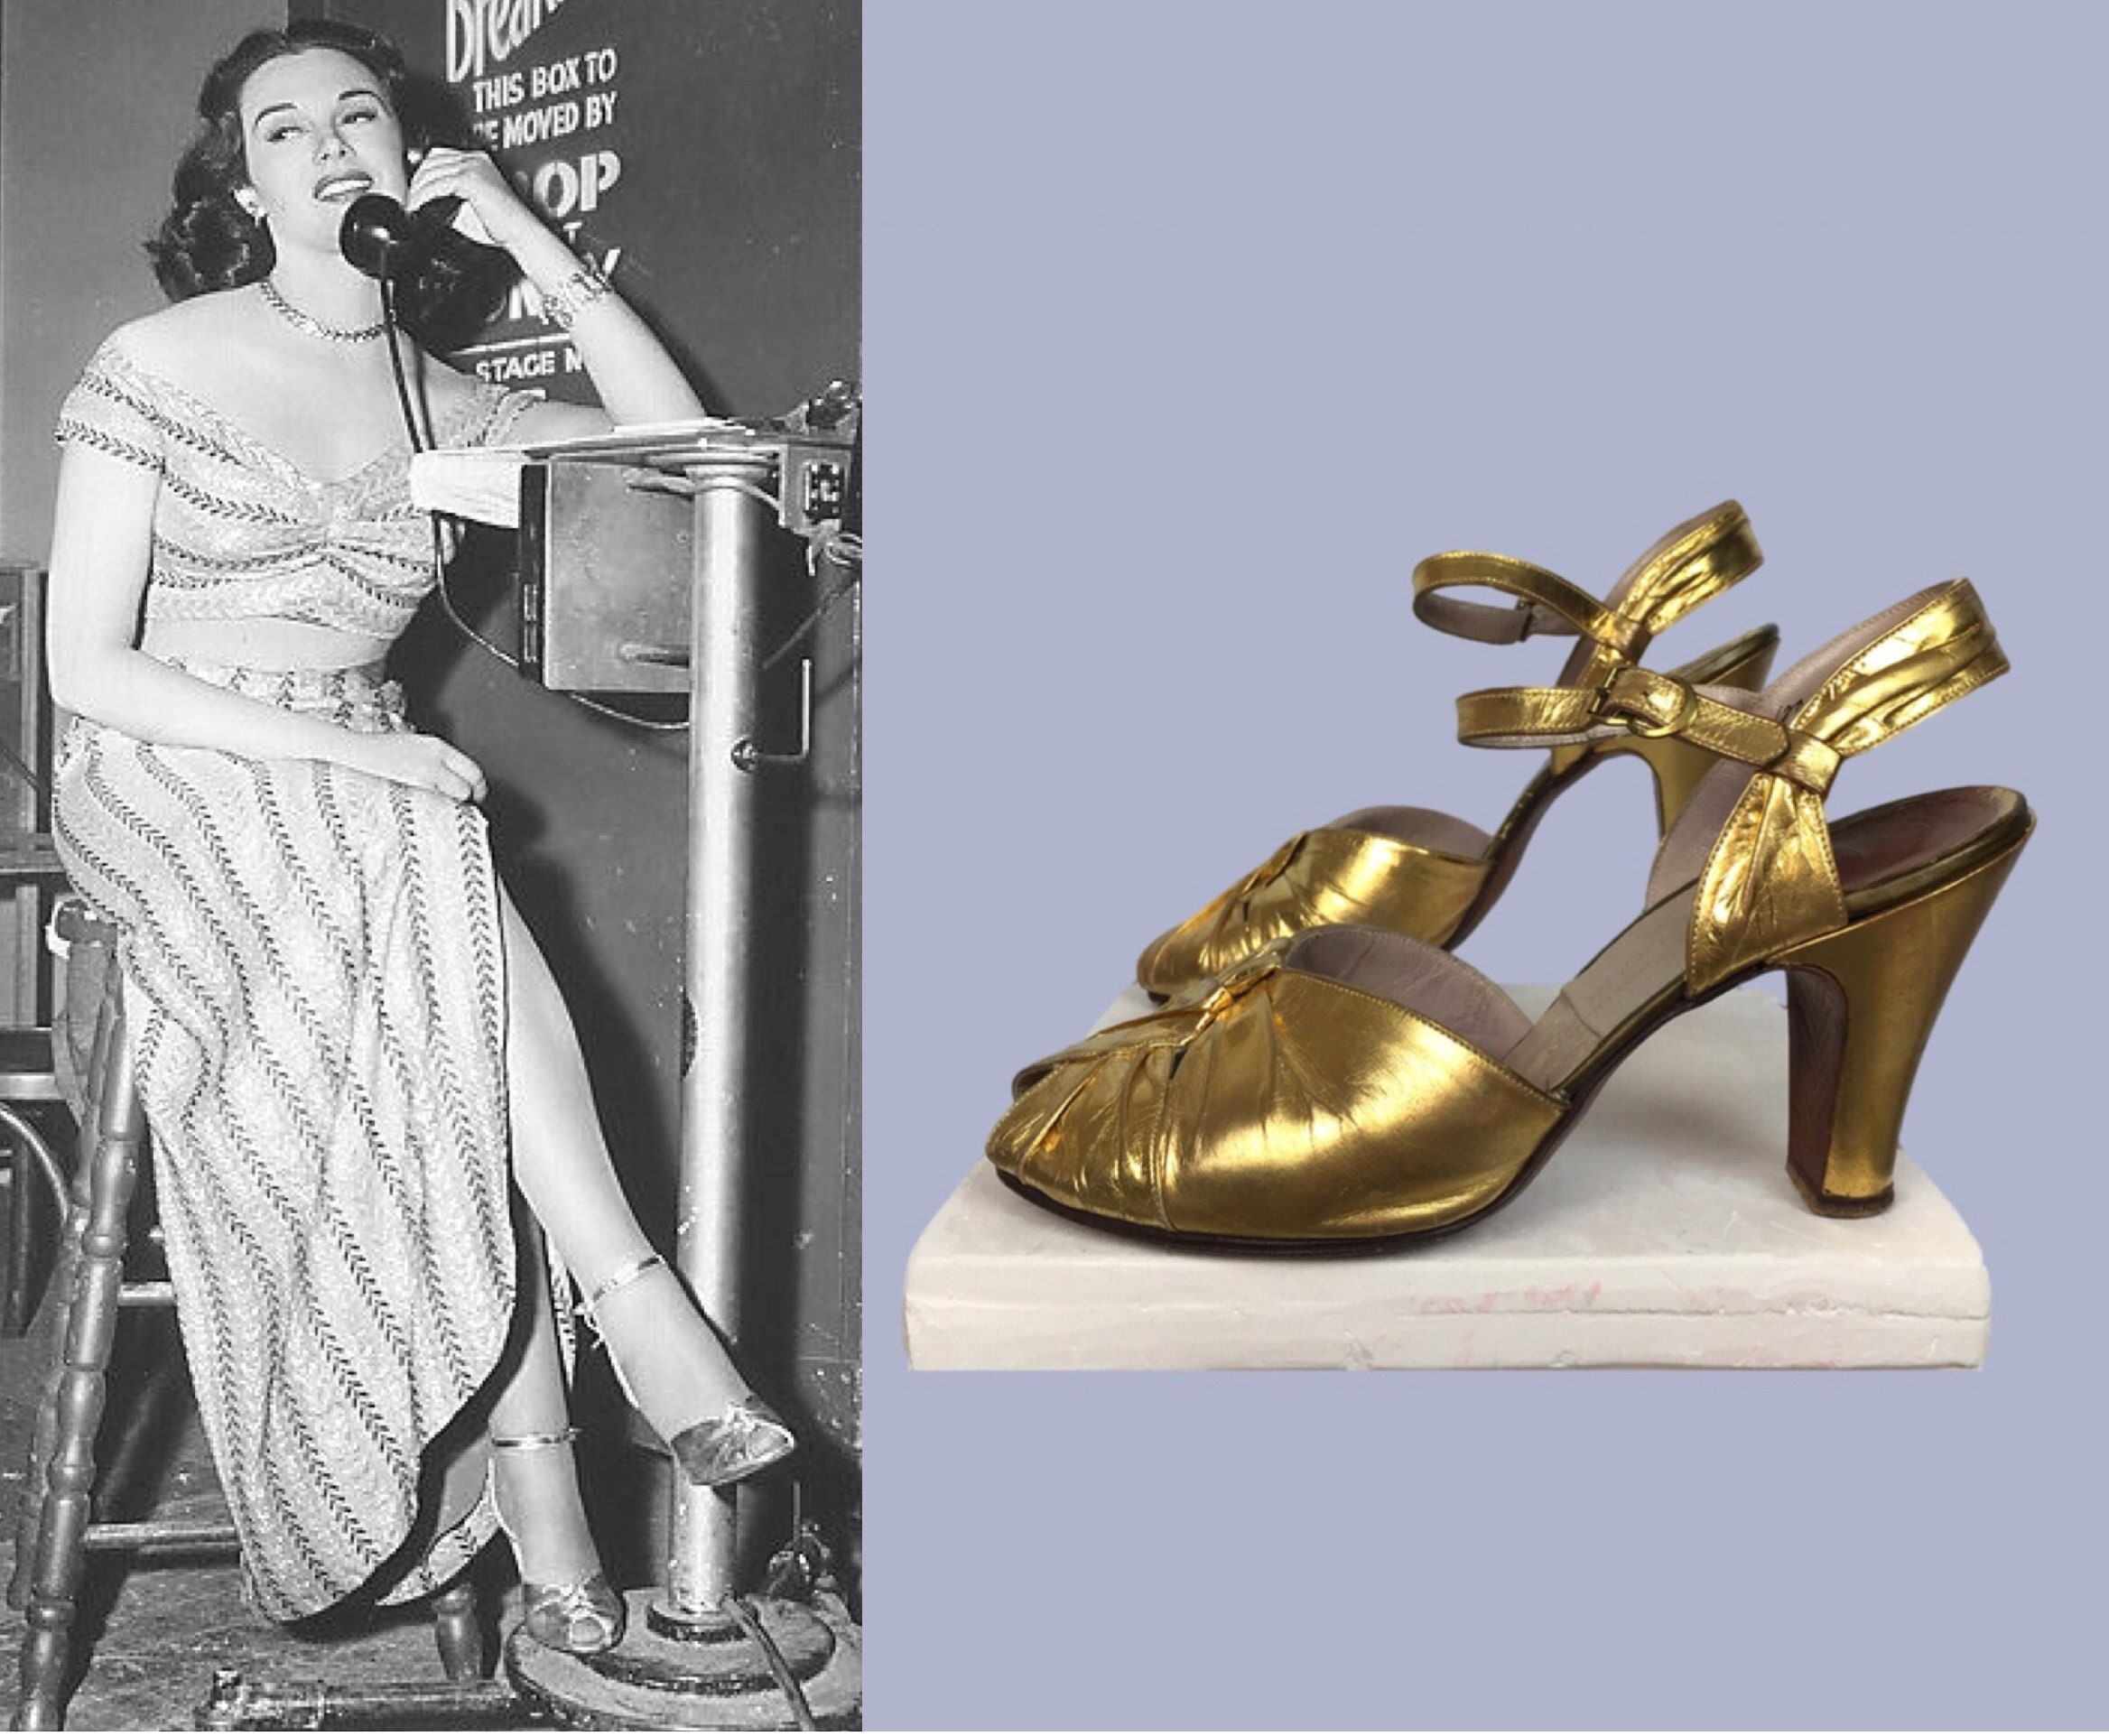 Salome 1940s Gold Metallic Dance Shoes Metallic Ankle Strap / Gold Metallic Shoes Heels / Swing Sandals WW2 /Old Hollywood 302a1a